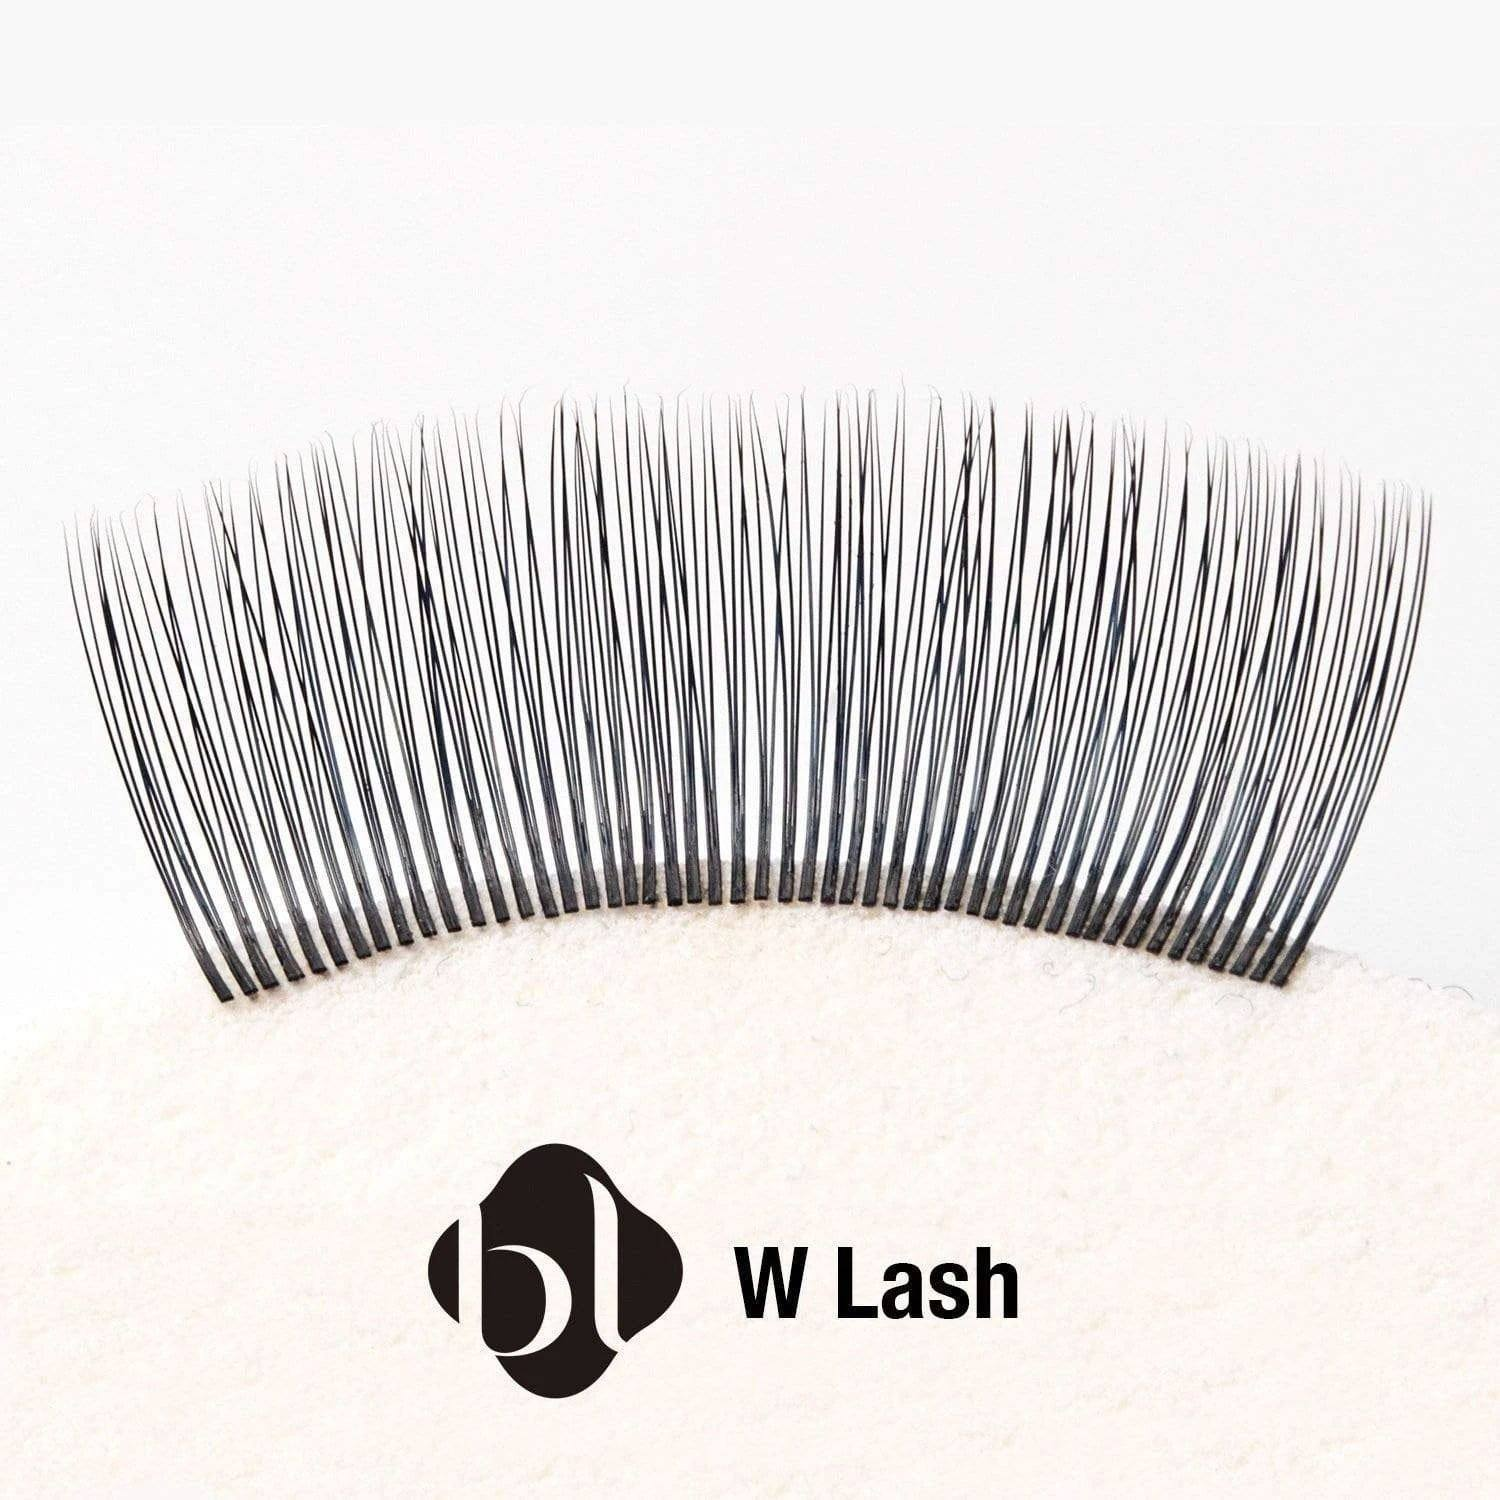 Blink BL Lashes (3D) 0.15 9 mm eyelash extensions